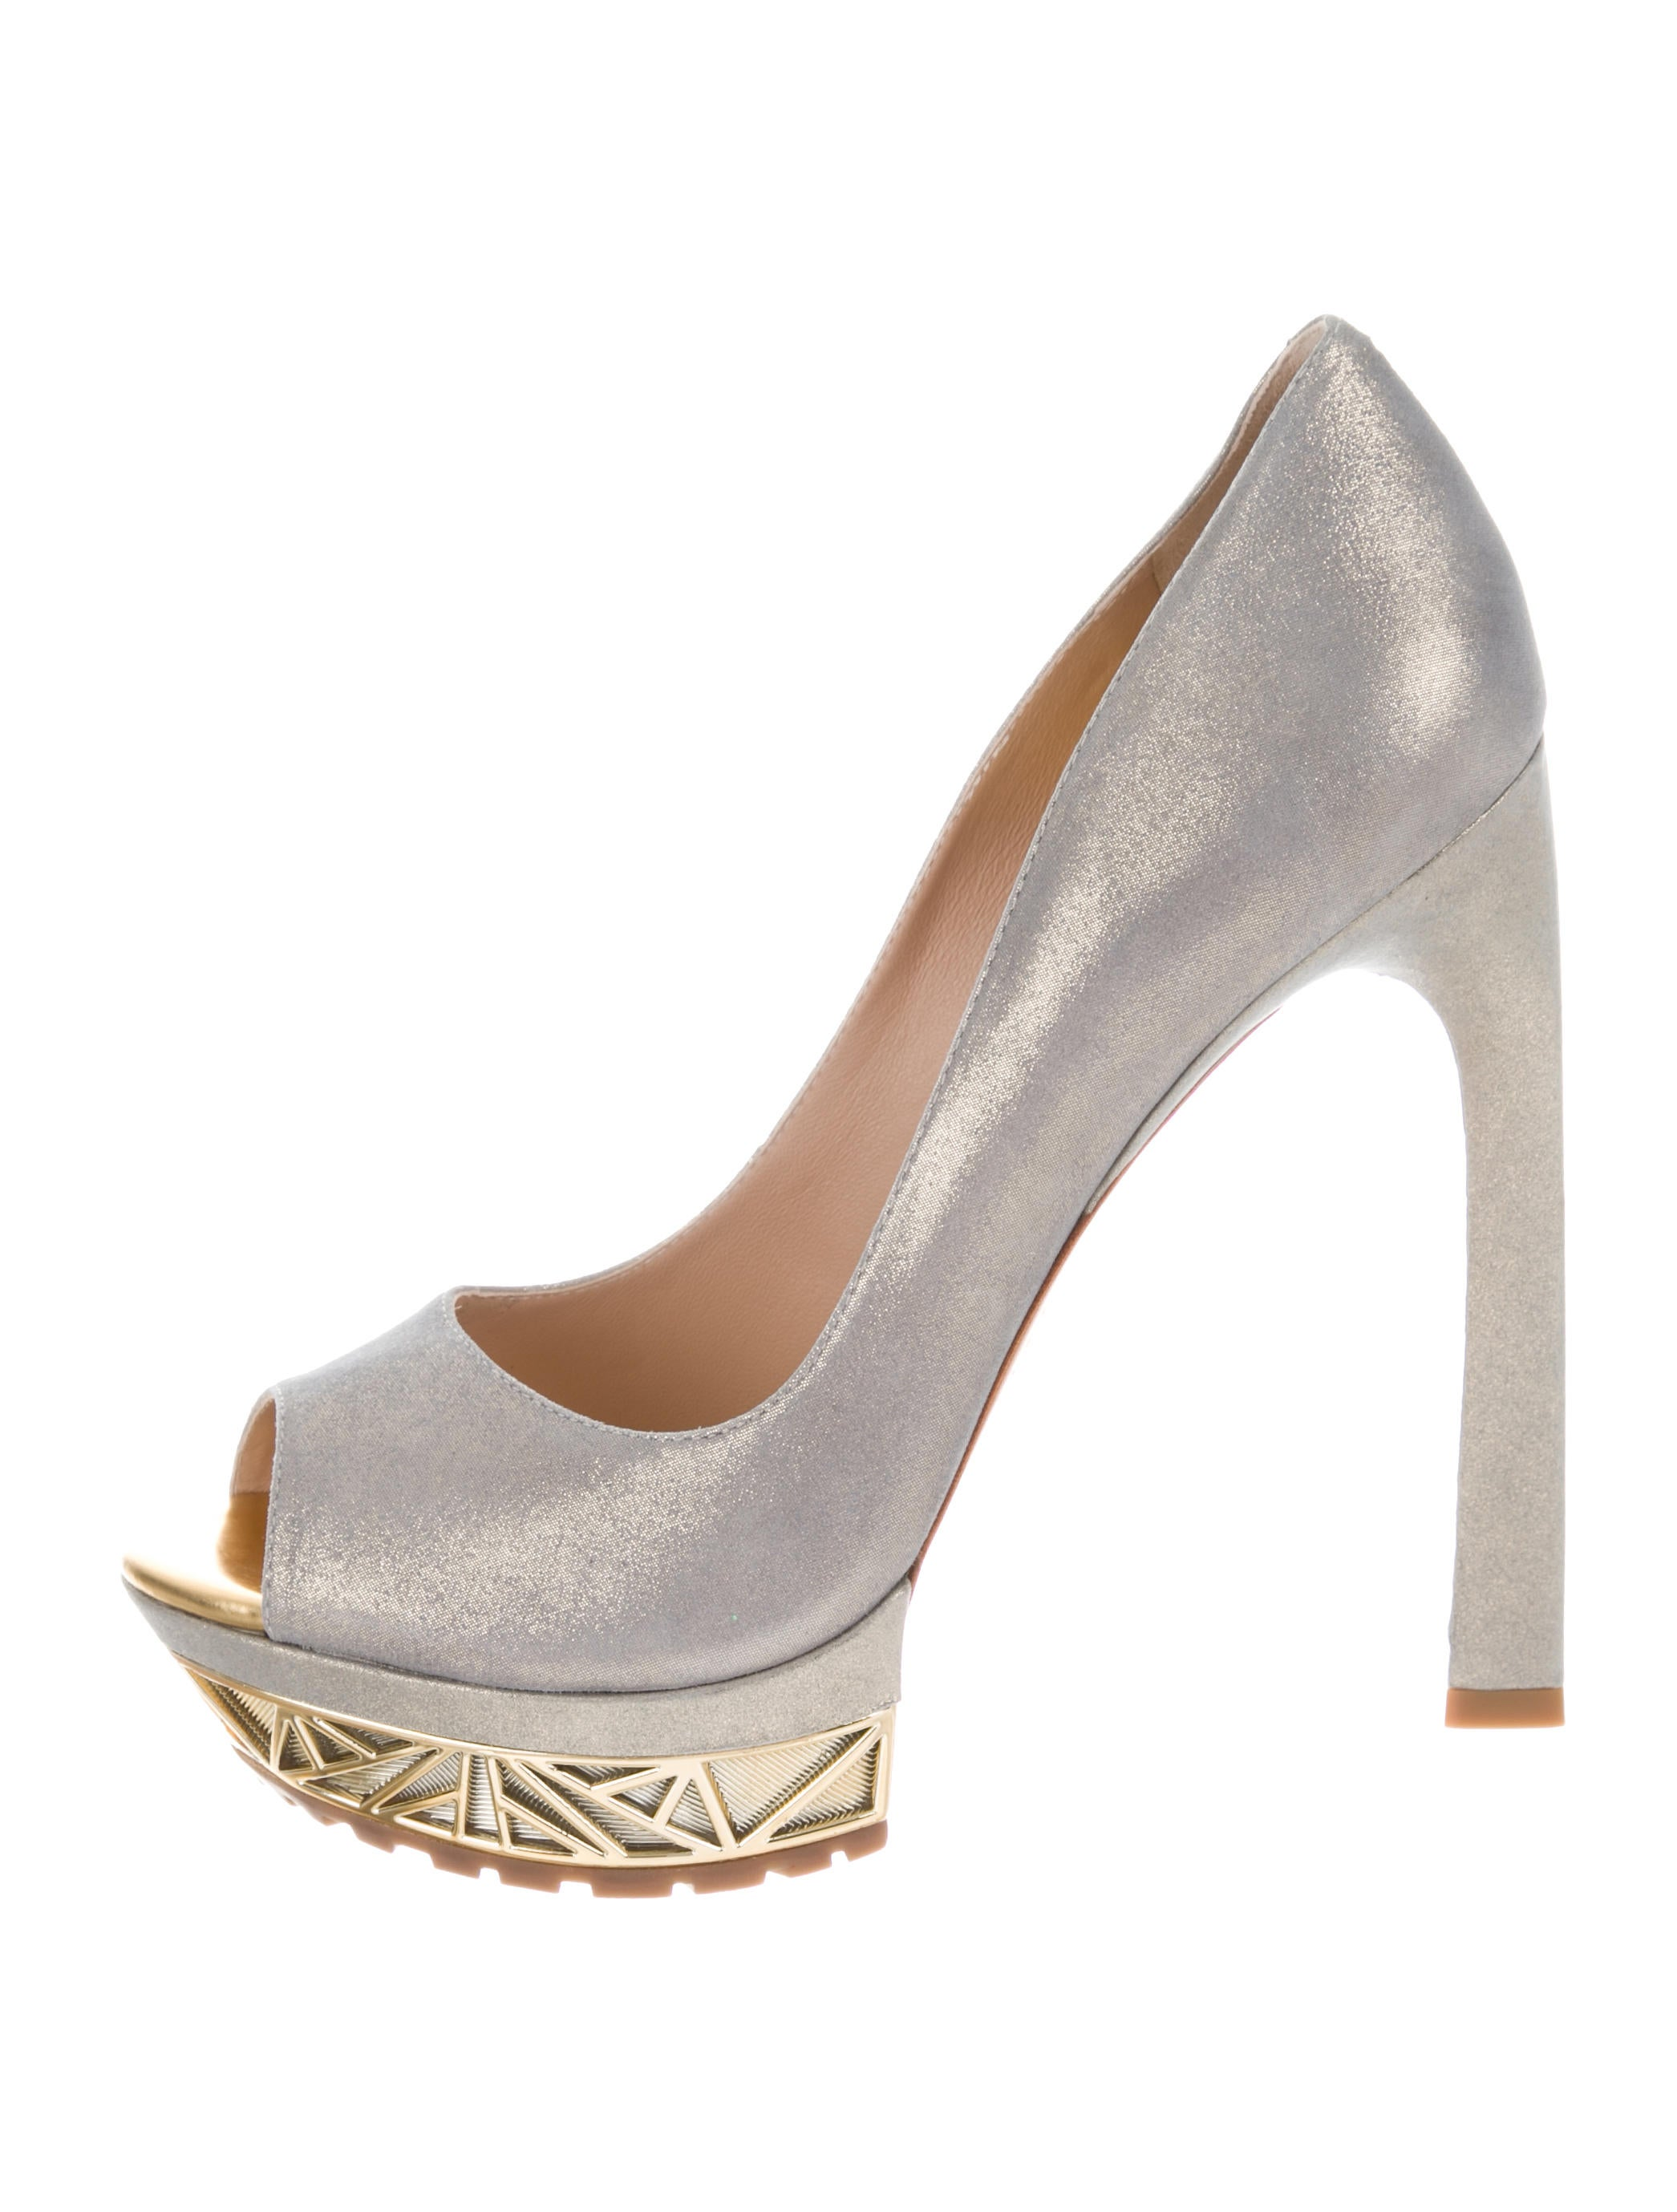 Femmes Sans Peur 2017 Cora Pumps w/ Tags low shipping fee cheap price tumblr online how much sale online discount new arrival ntJmJ